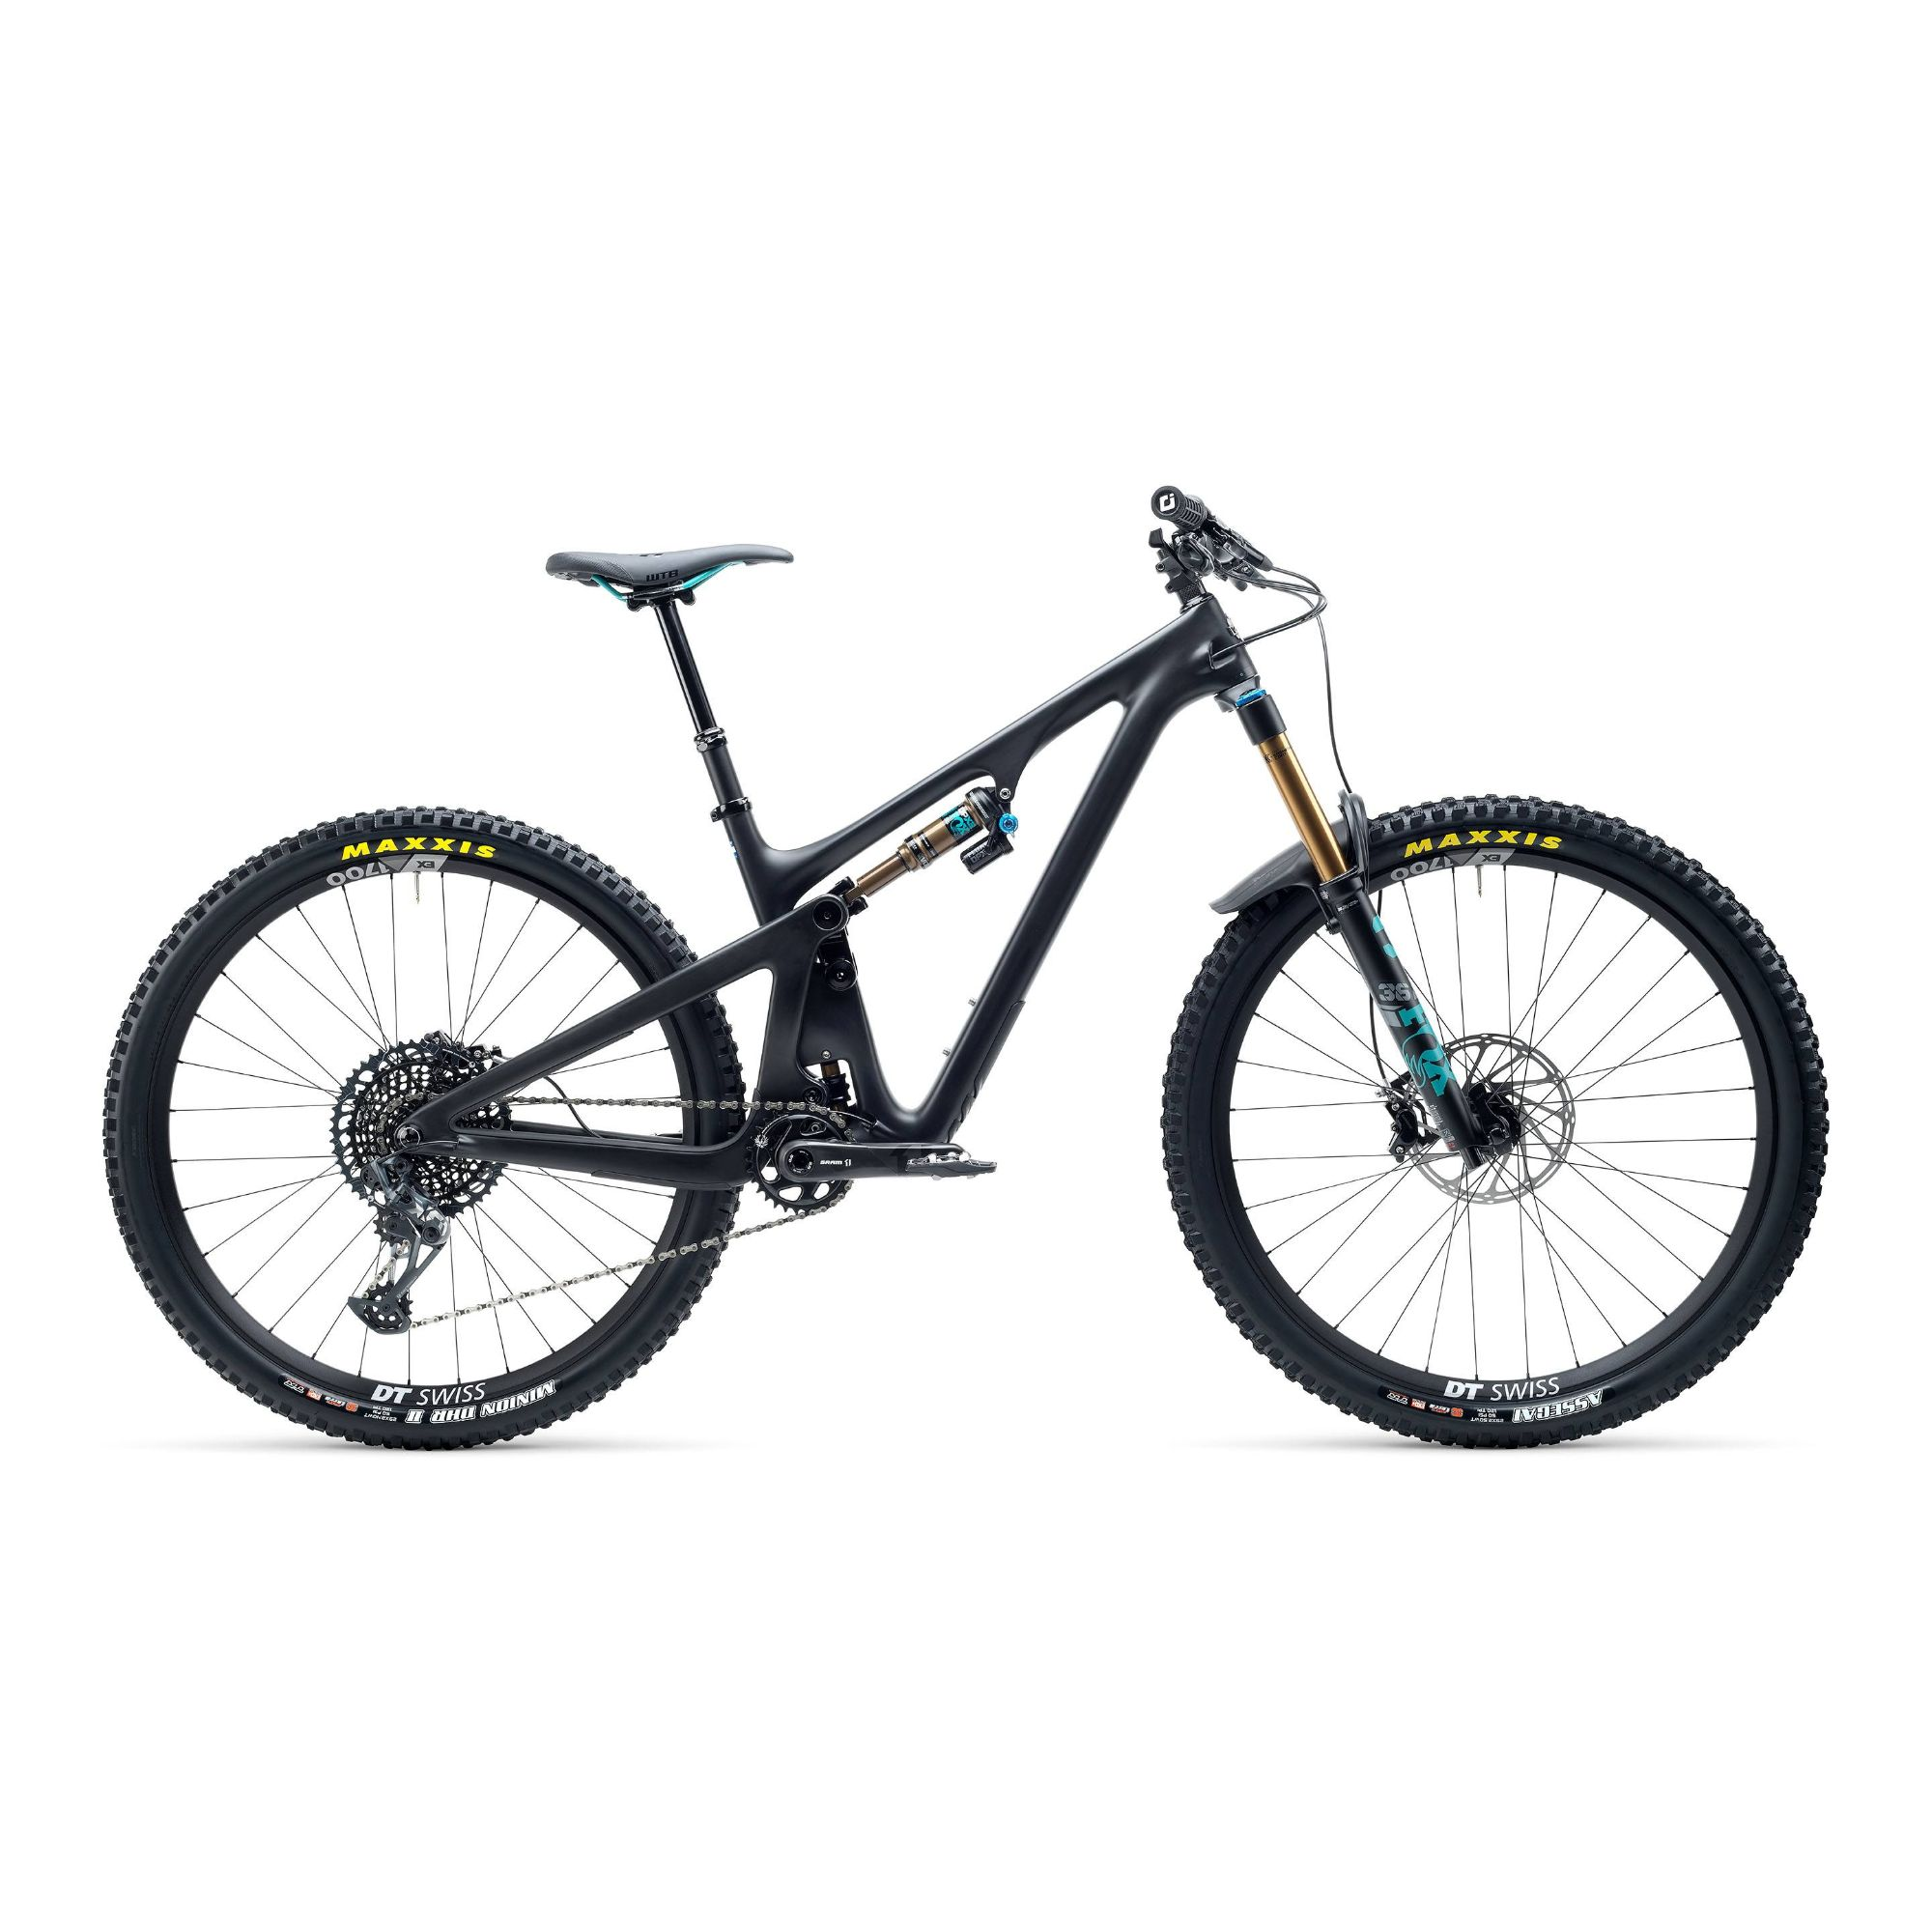 Yeti SB130 TSeries XO1 Lunchride 29er Carbon Mountain Bike 2021 RAW